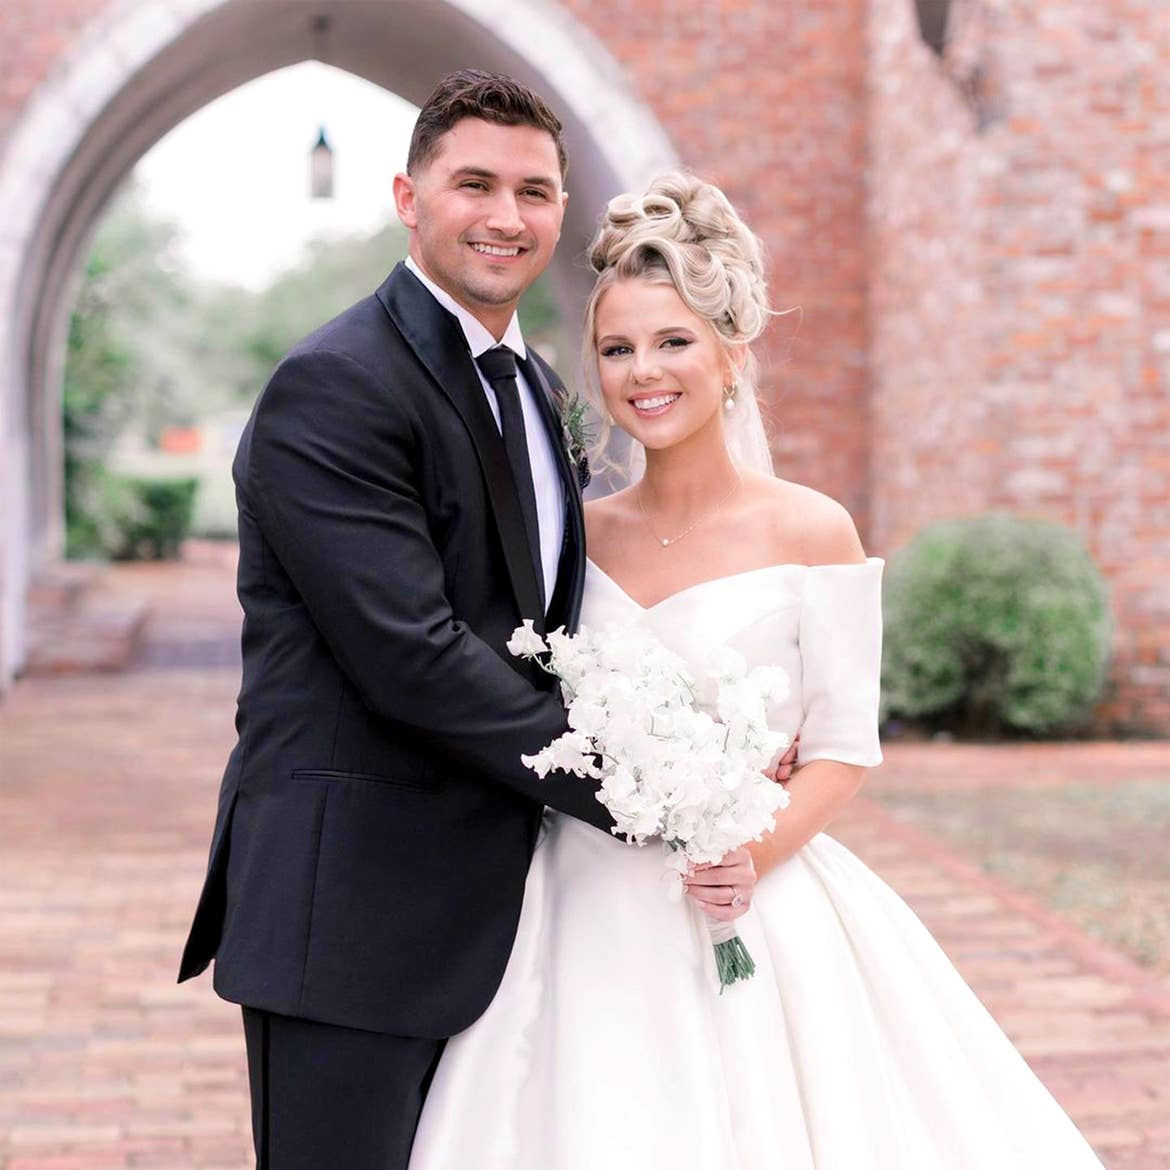 A Latinx groom wearing a black suit and necktie (left) and a caucasian bride with an updo (right) pose next to each other in front of a brick facade.